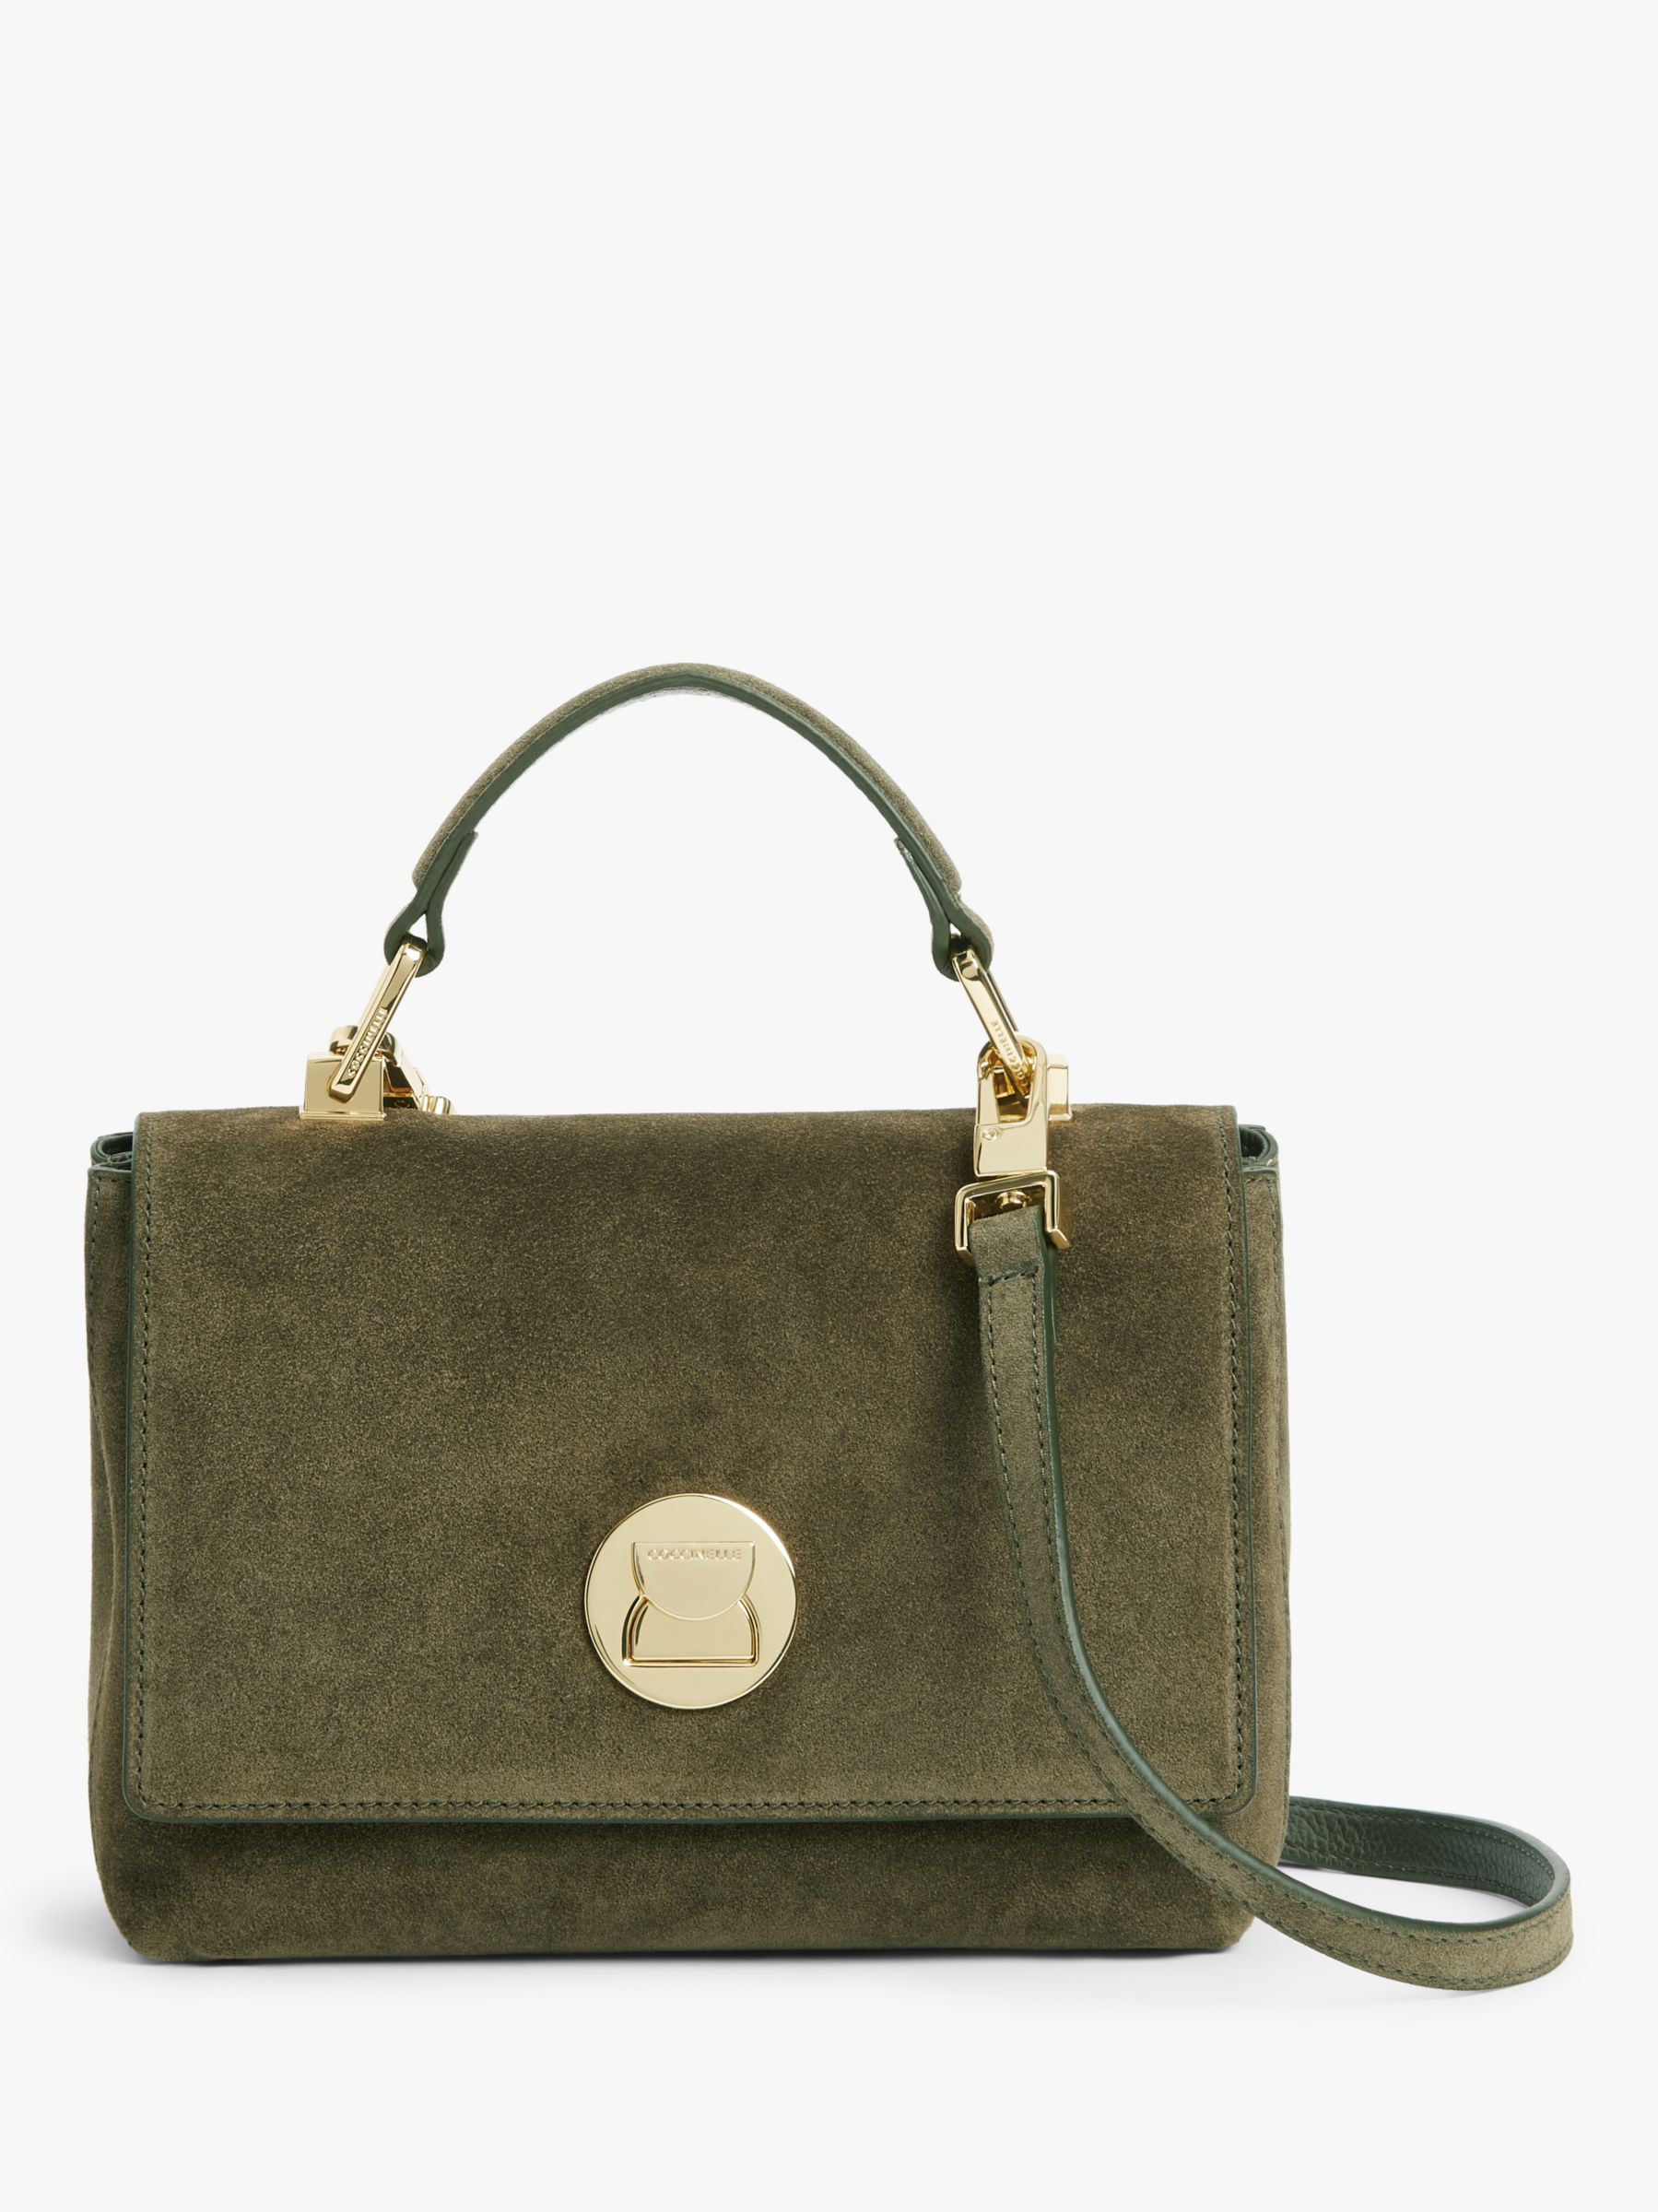 Coccinelle Coccinelle Liya Suede Cross Body Bag